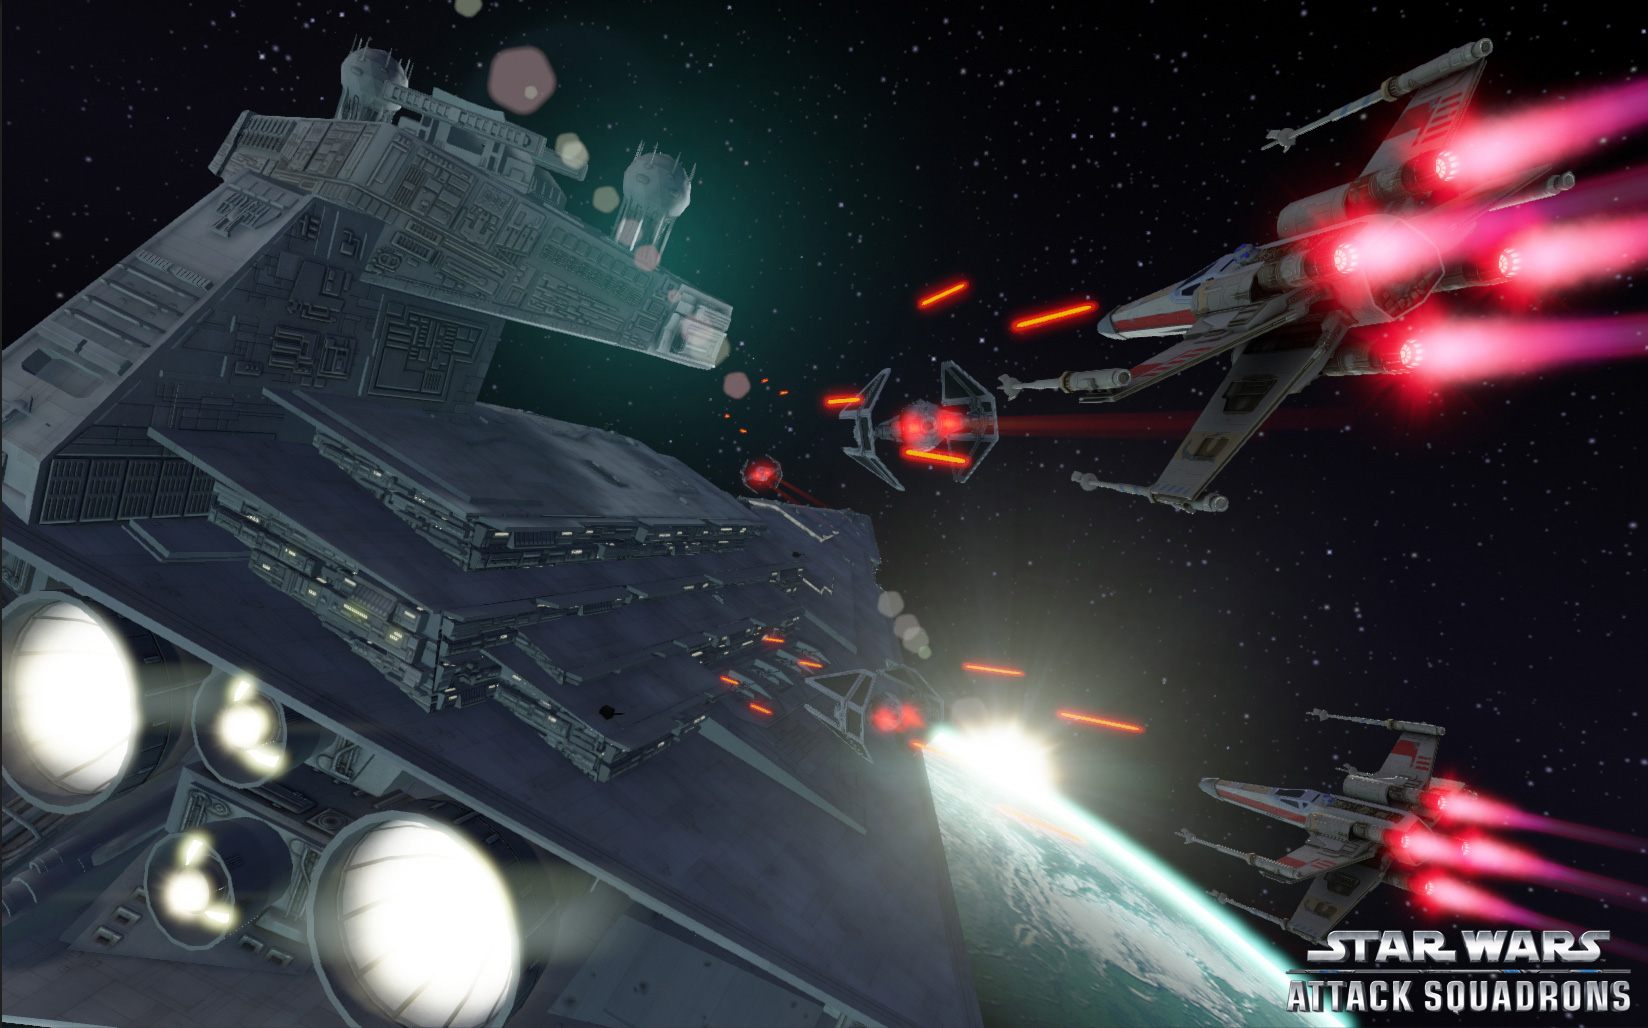 star wars attack squadrons is free space combat game for